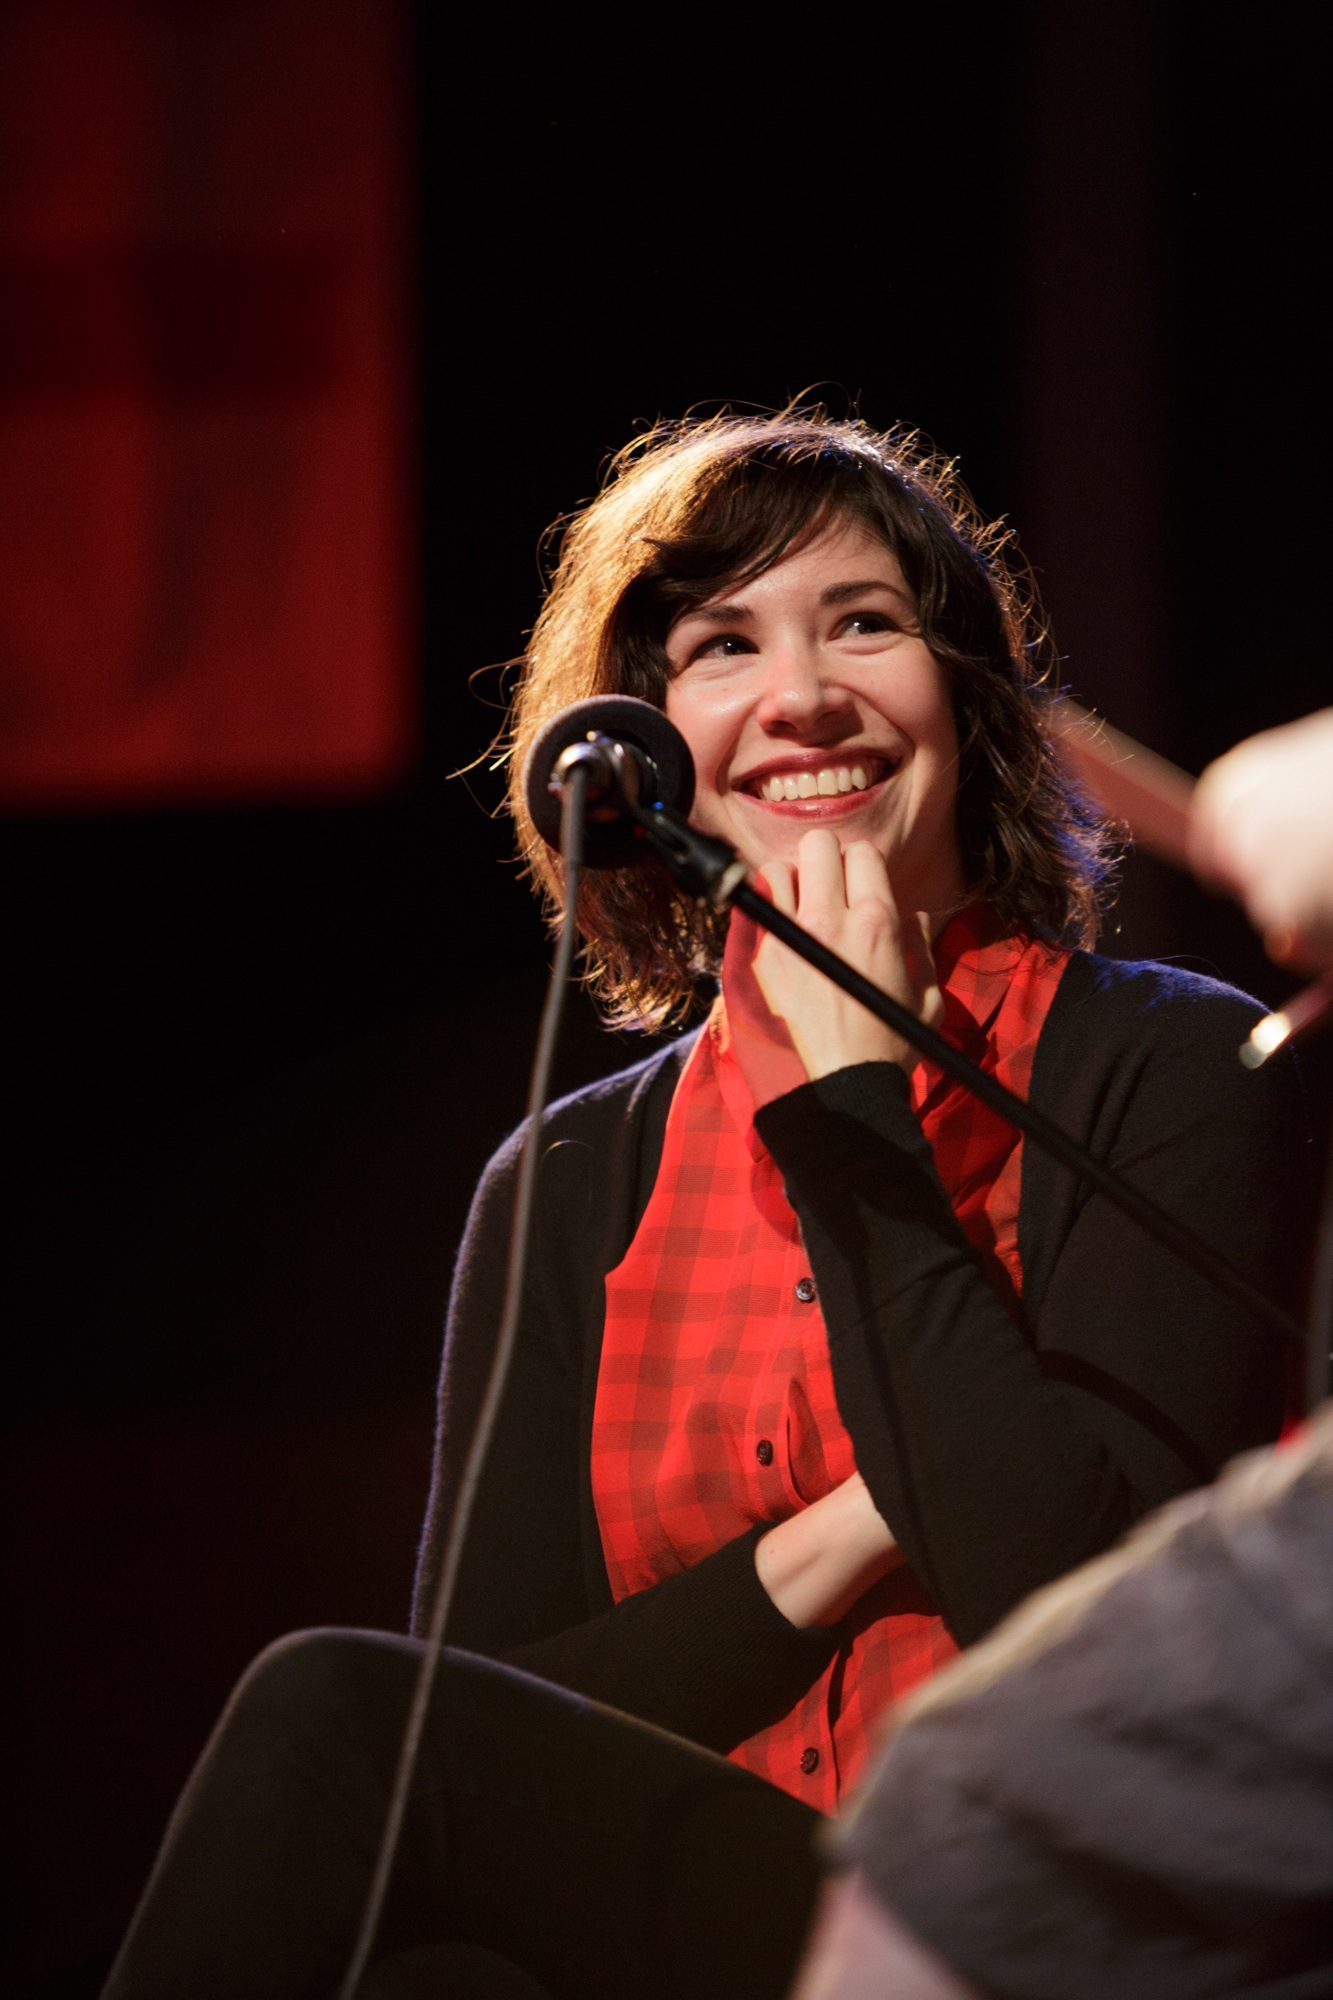 Caption: Actress, Author & Singer Carrie Brownstein, Credit: Jennie Baker for Live Wire!